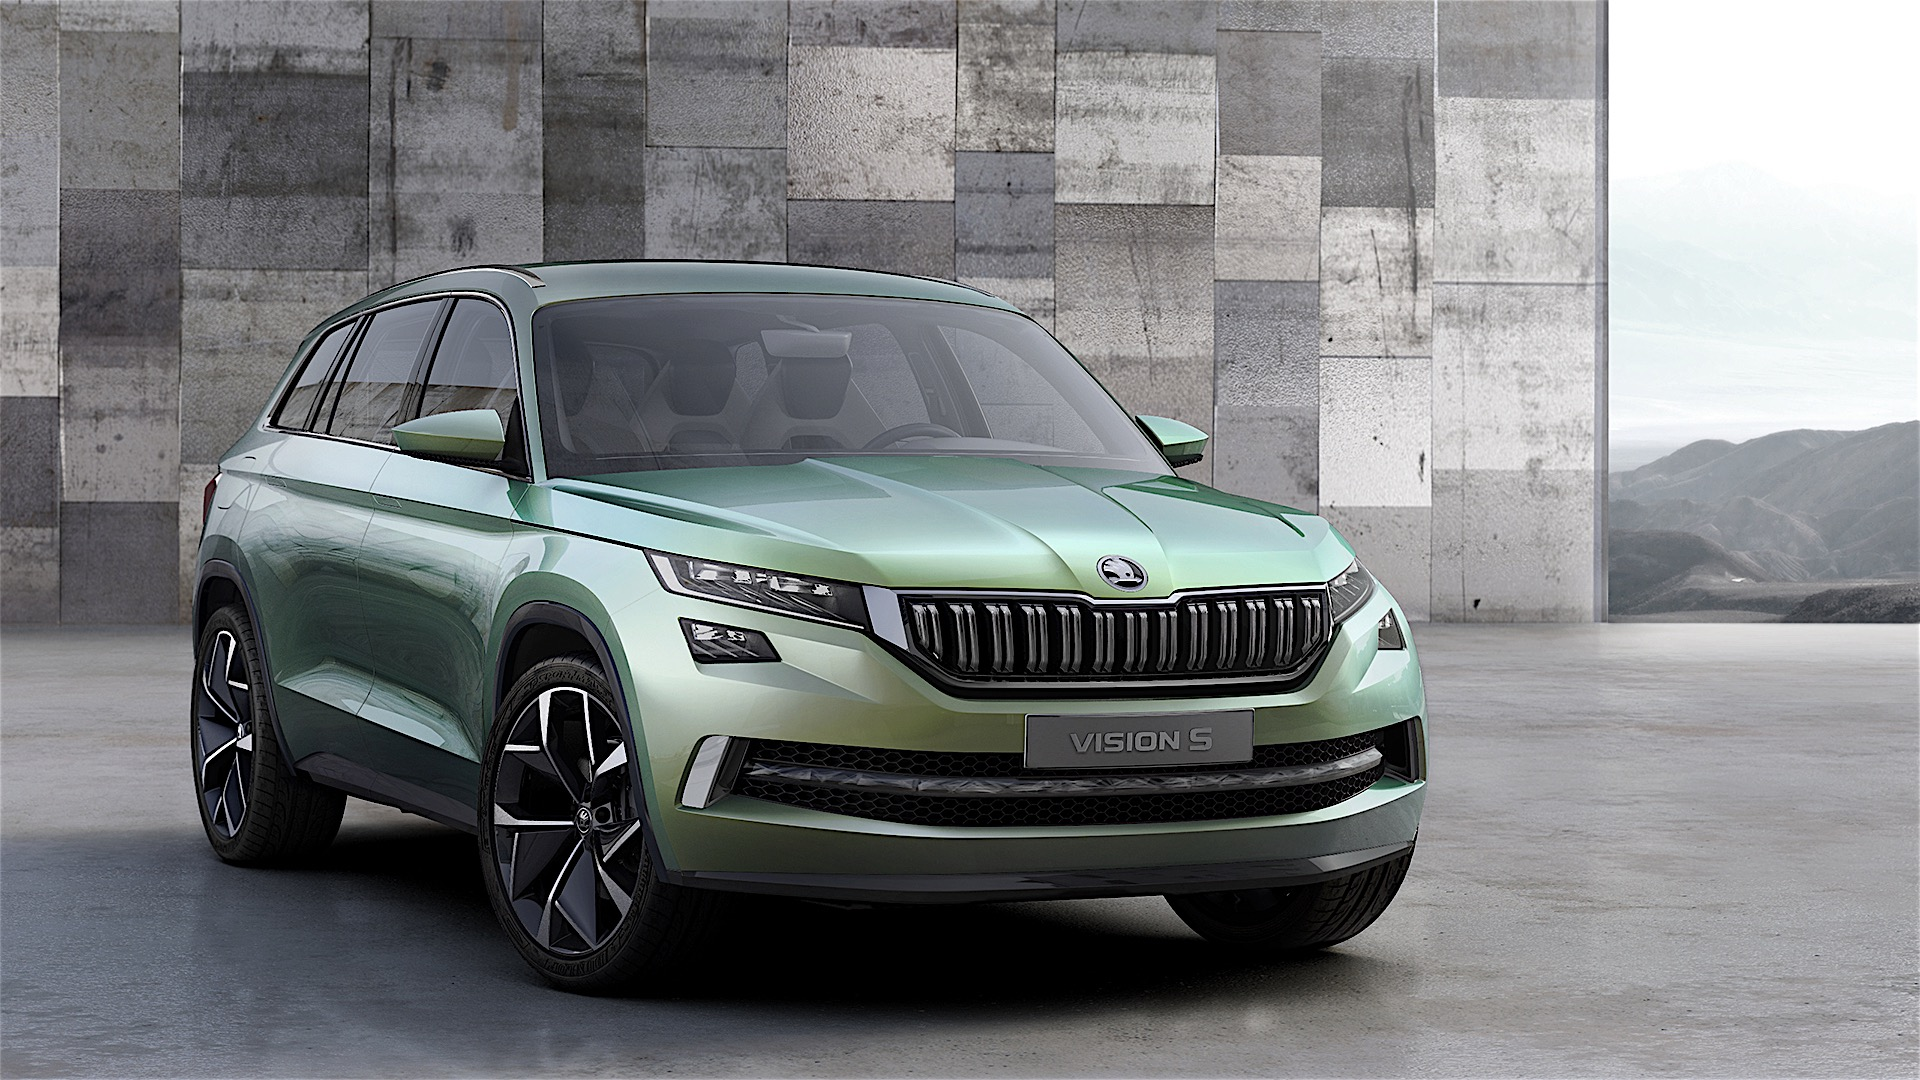 skoda showcases visions concept study it 39 s a plug in hybrid suv autoevolution. Black Bedroom Furniture Sets. Home Design Ideas